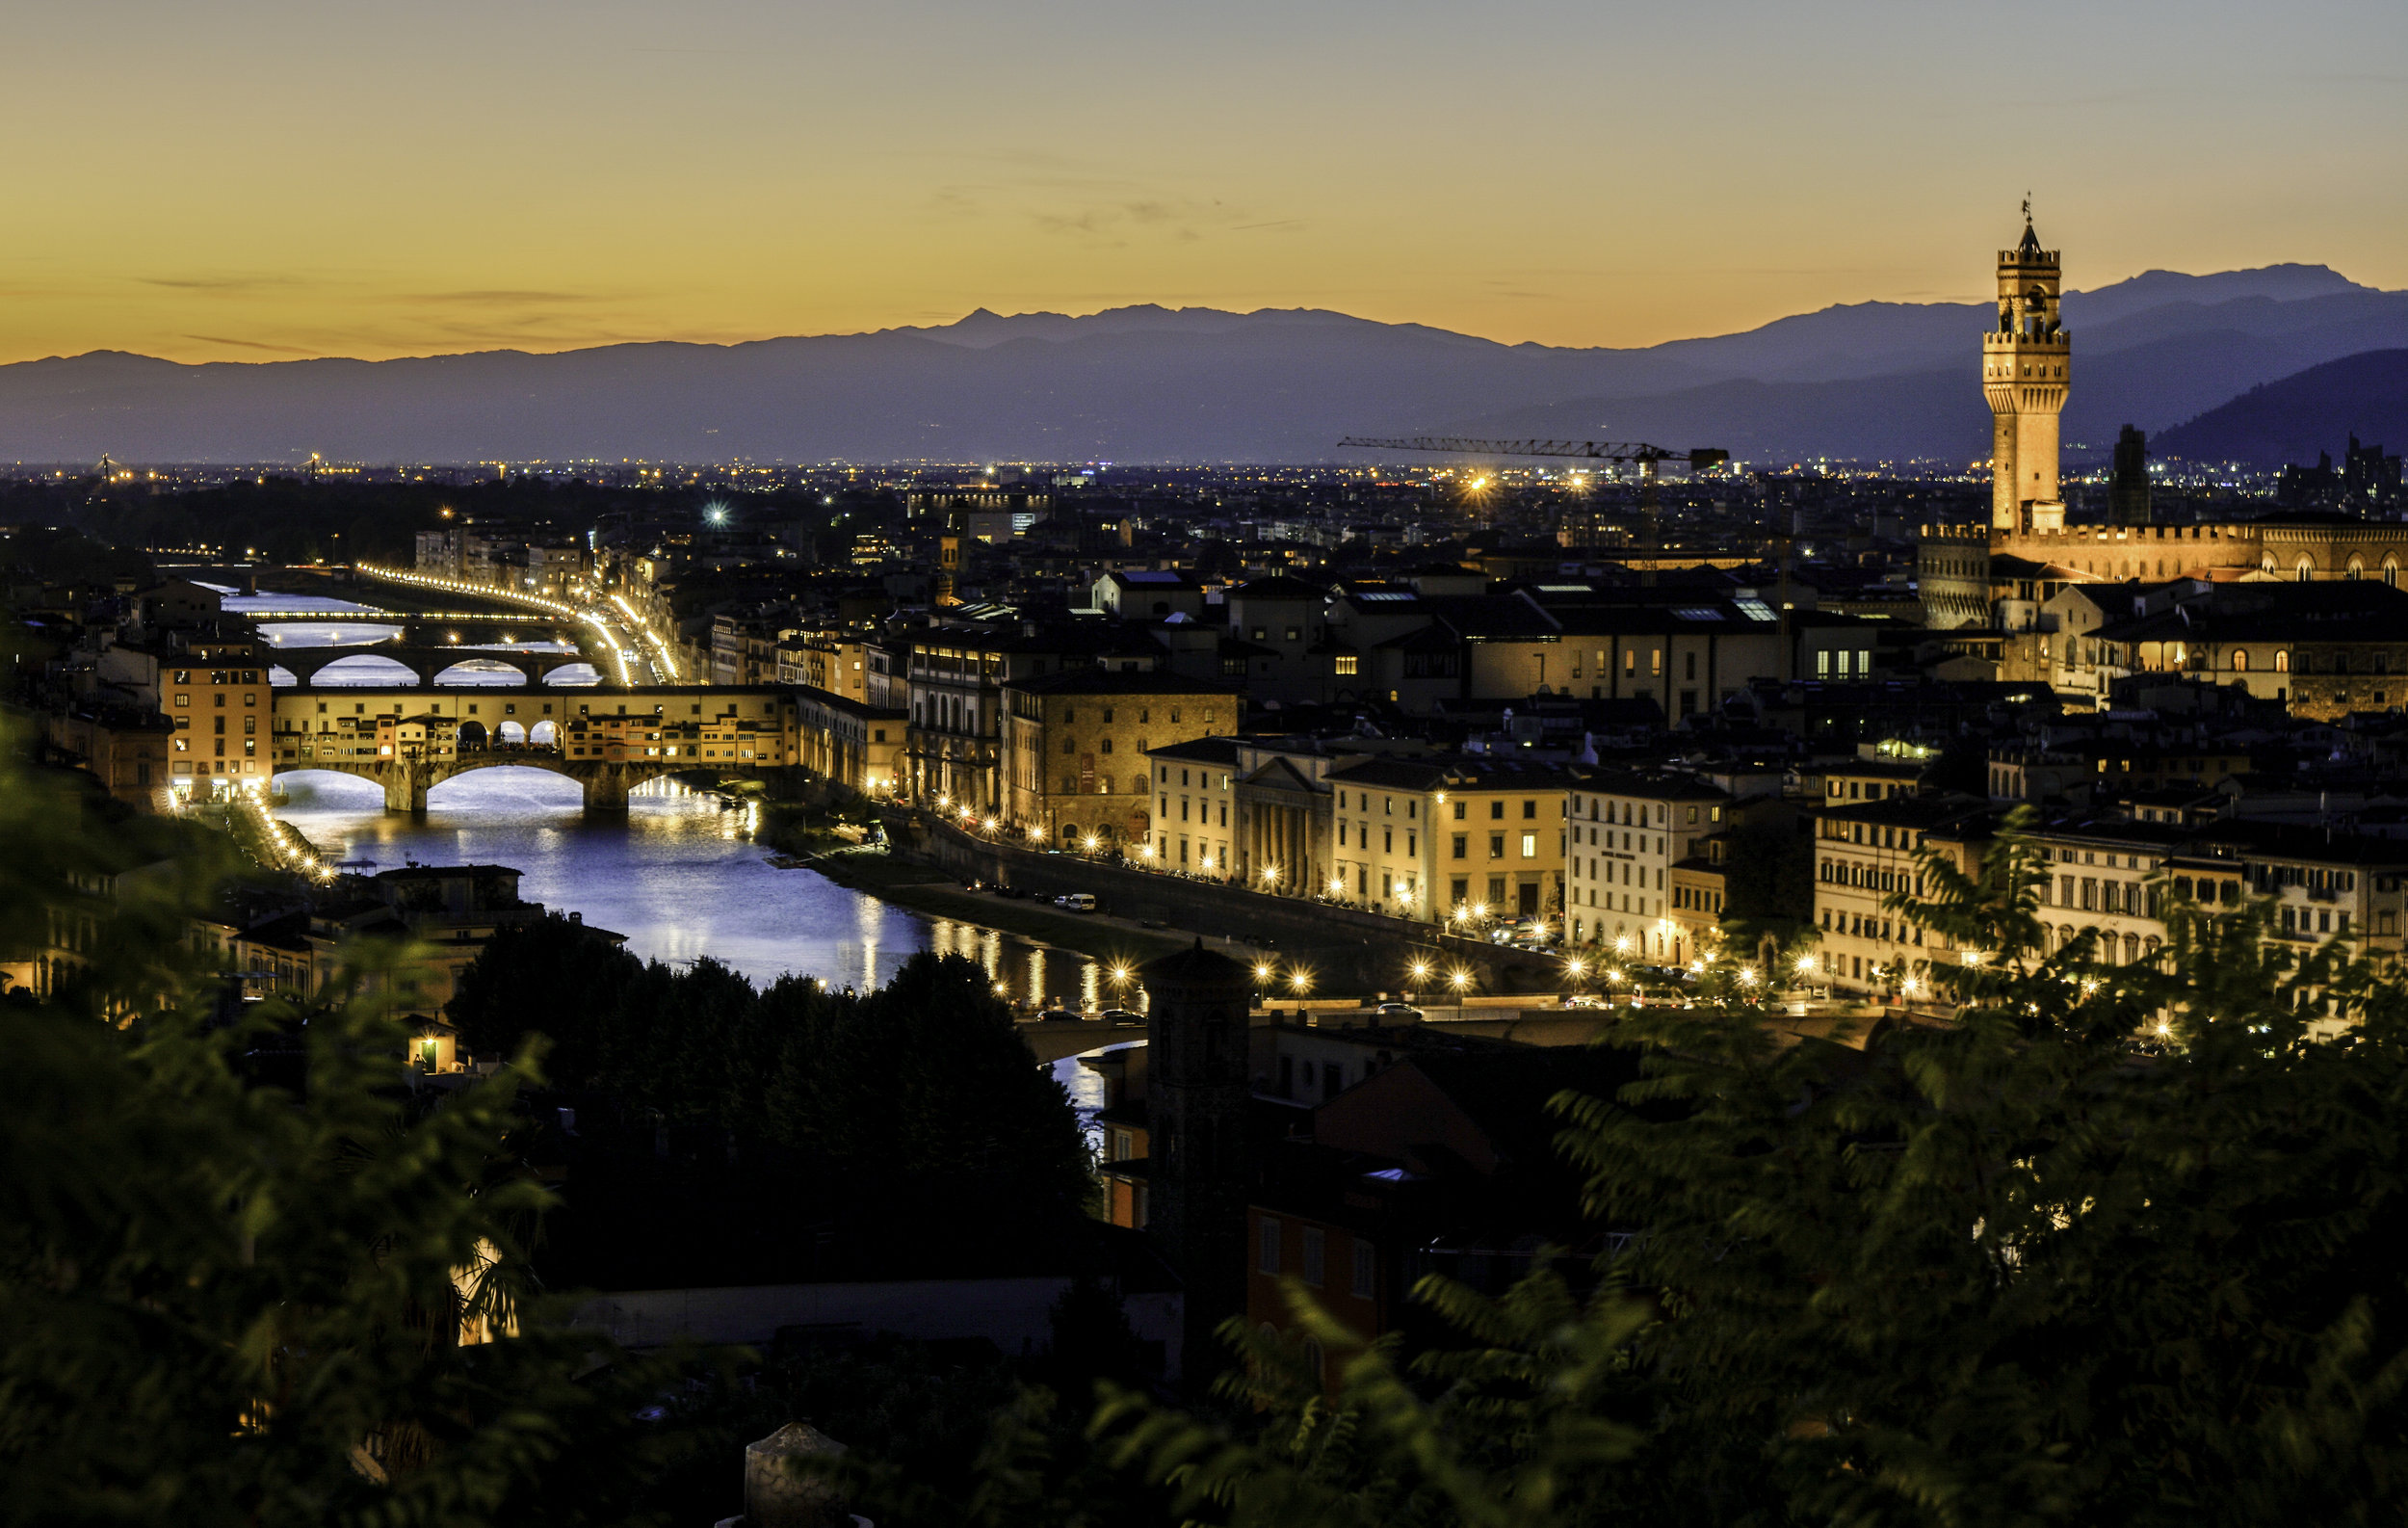 A short walk from the historical center, Piazzale Michelangelo gives a commanding panoramic view of Florence, including the Duomo, Ponte Vecchio, Forte Belvedere, Fiesole, and more. The best time to come is sunset, but arrive early its popular! Photo credit: Freethedust